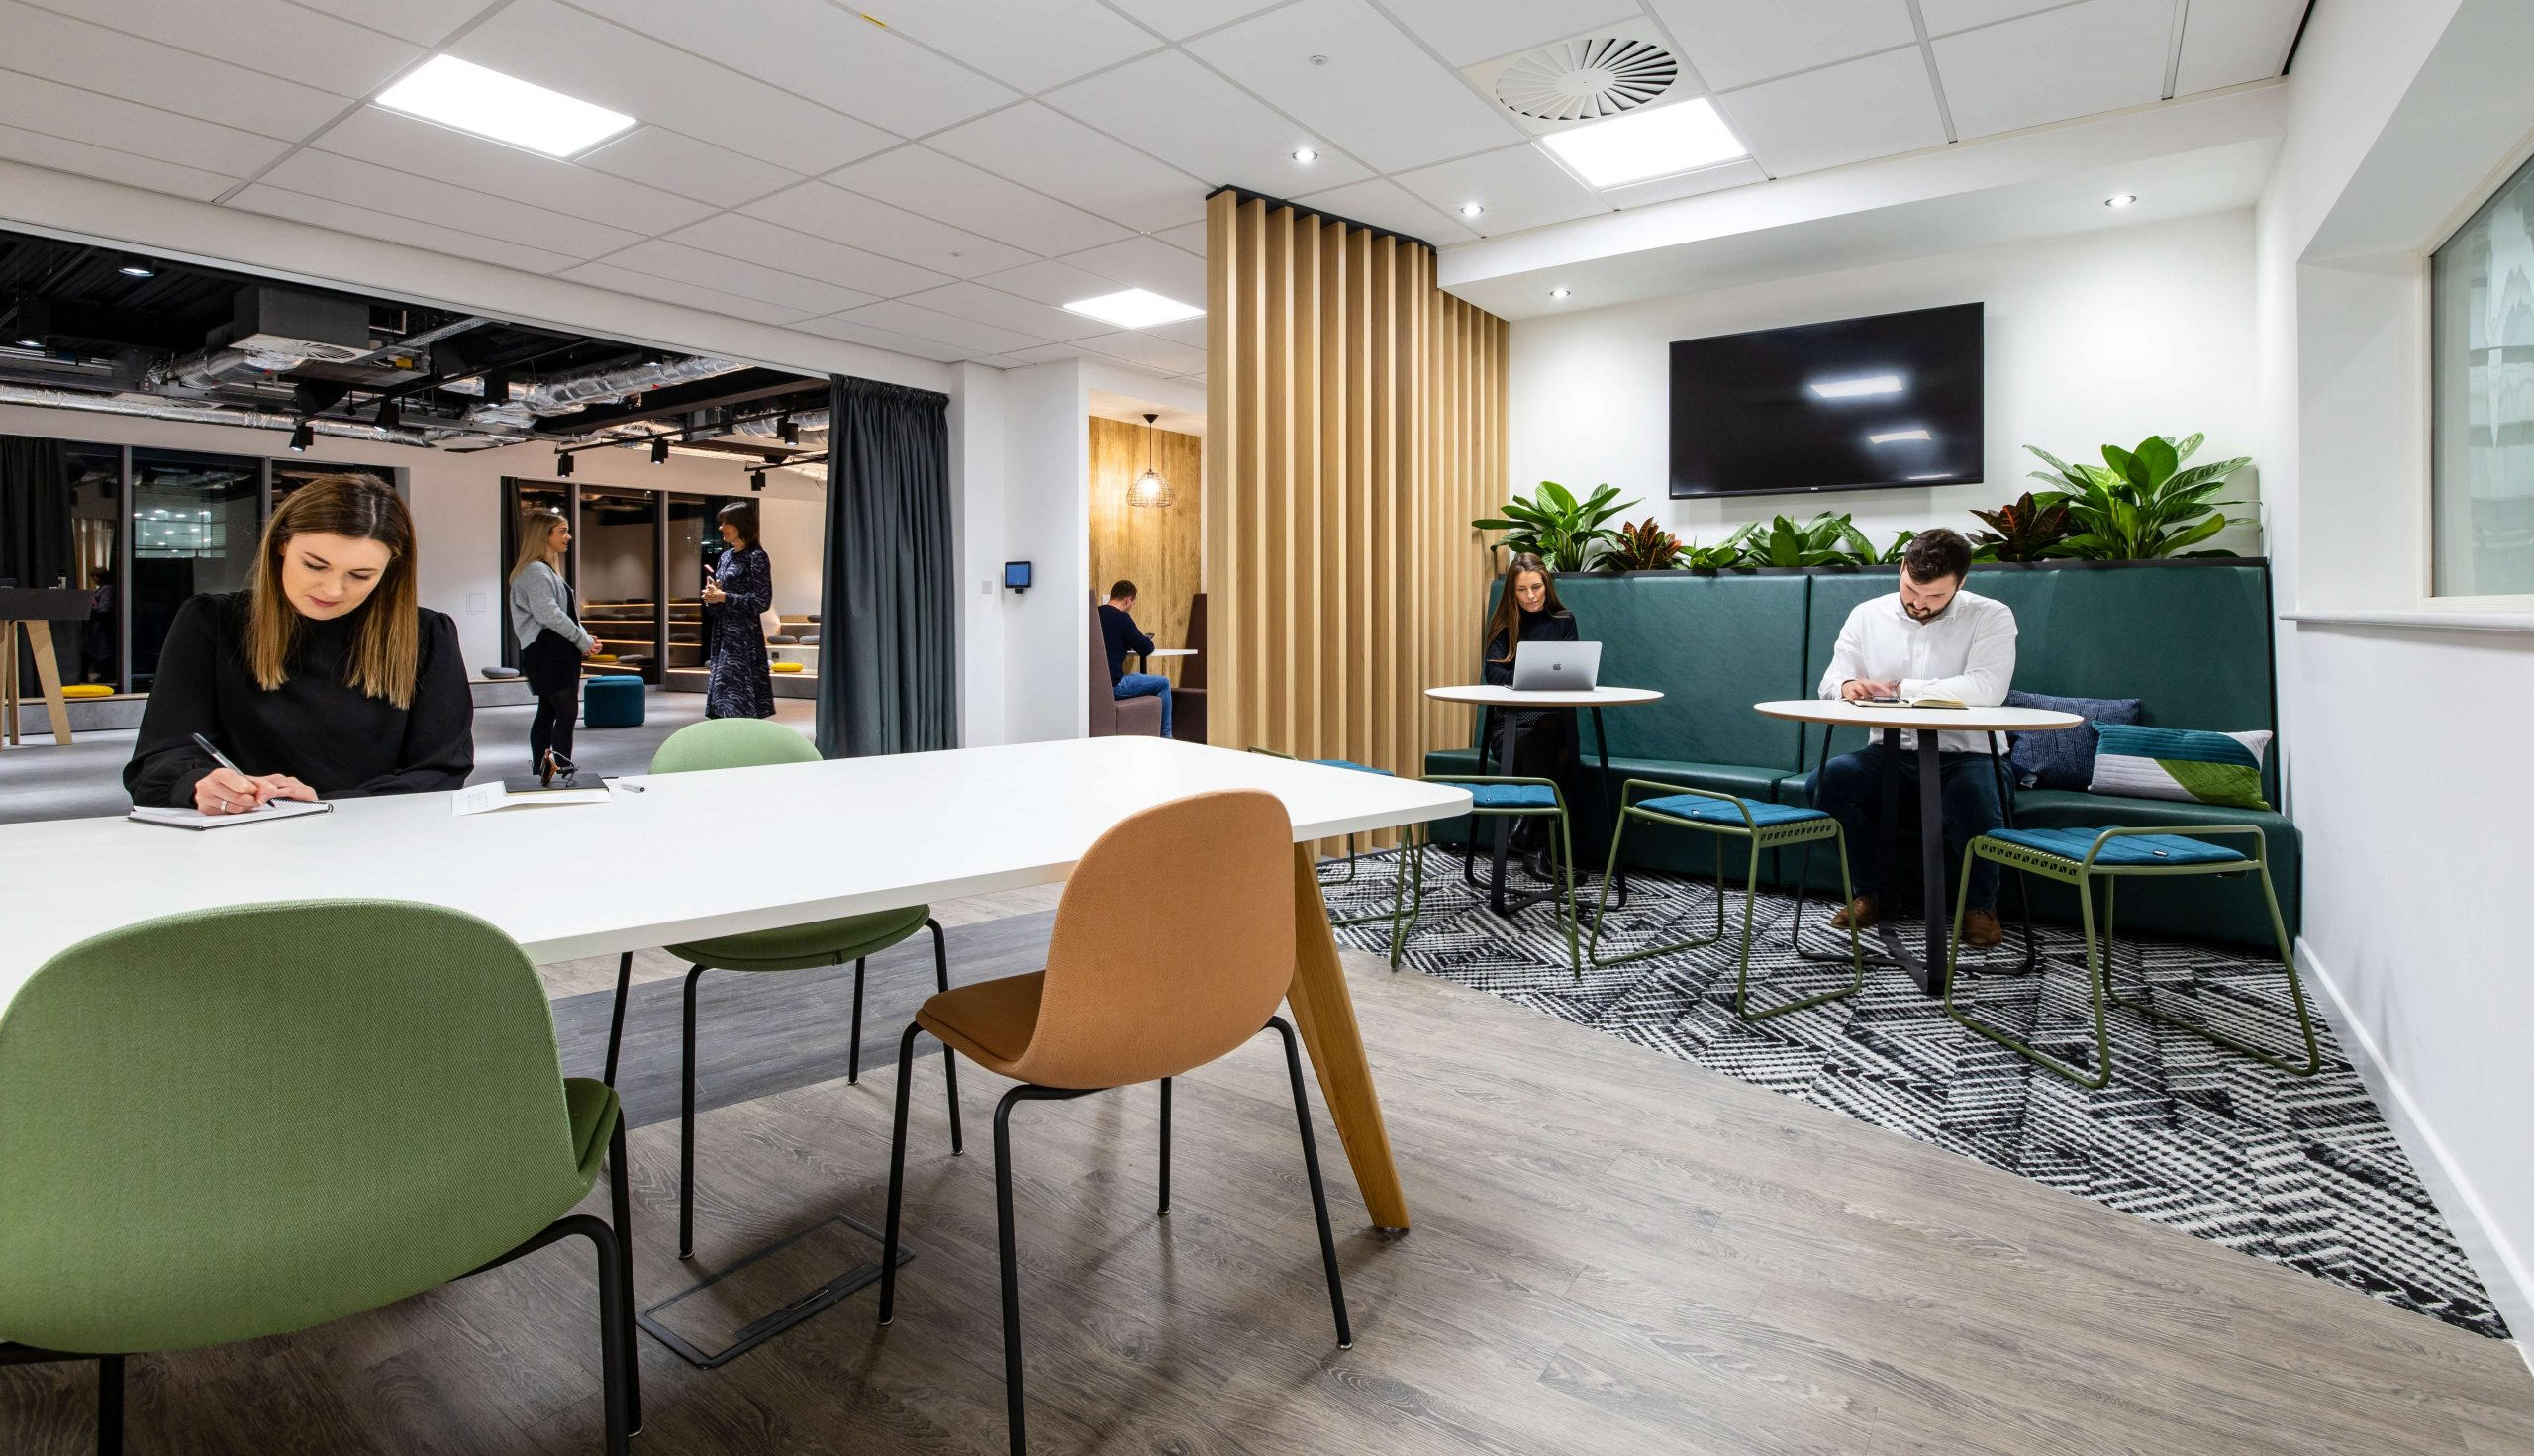 GKN Aerospace – Office Design and Build Case Study